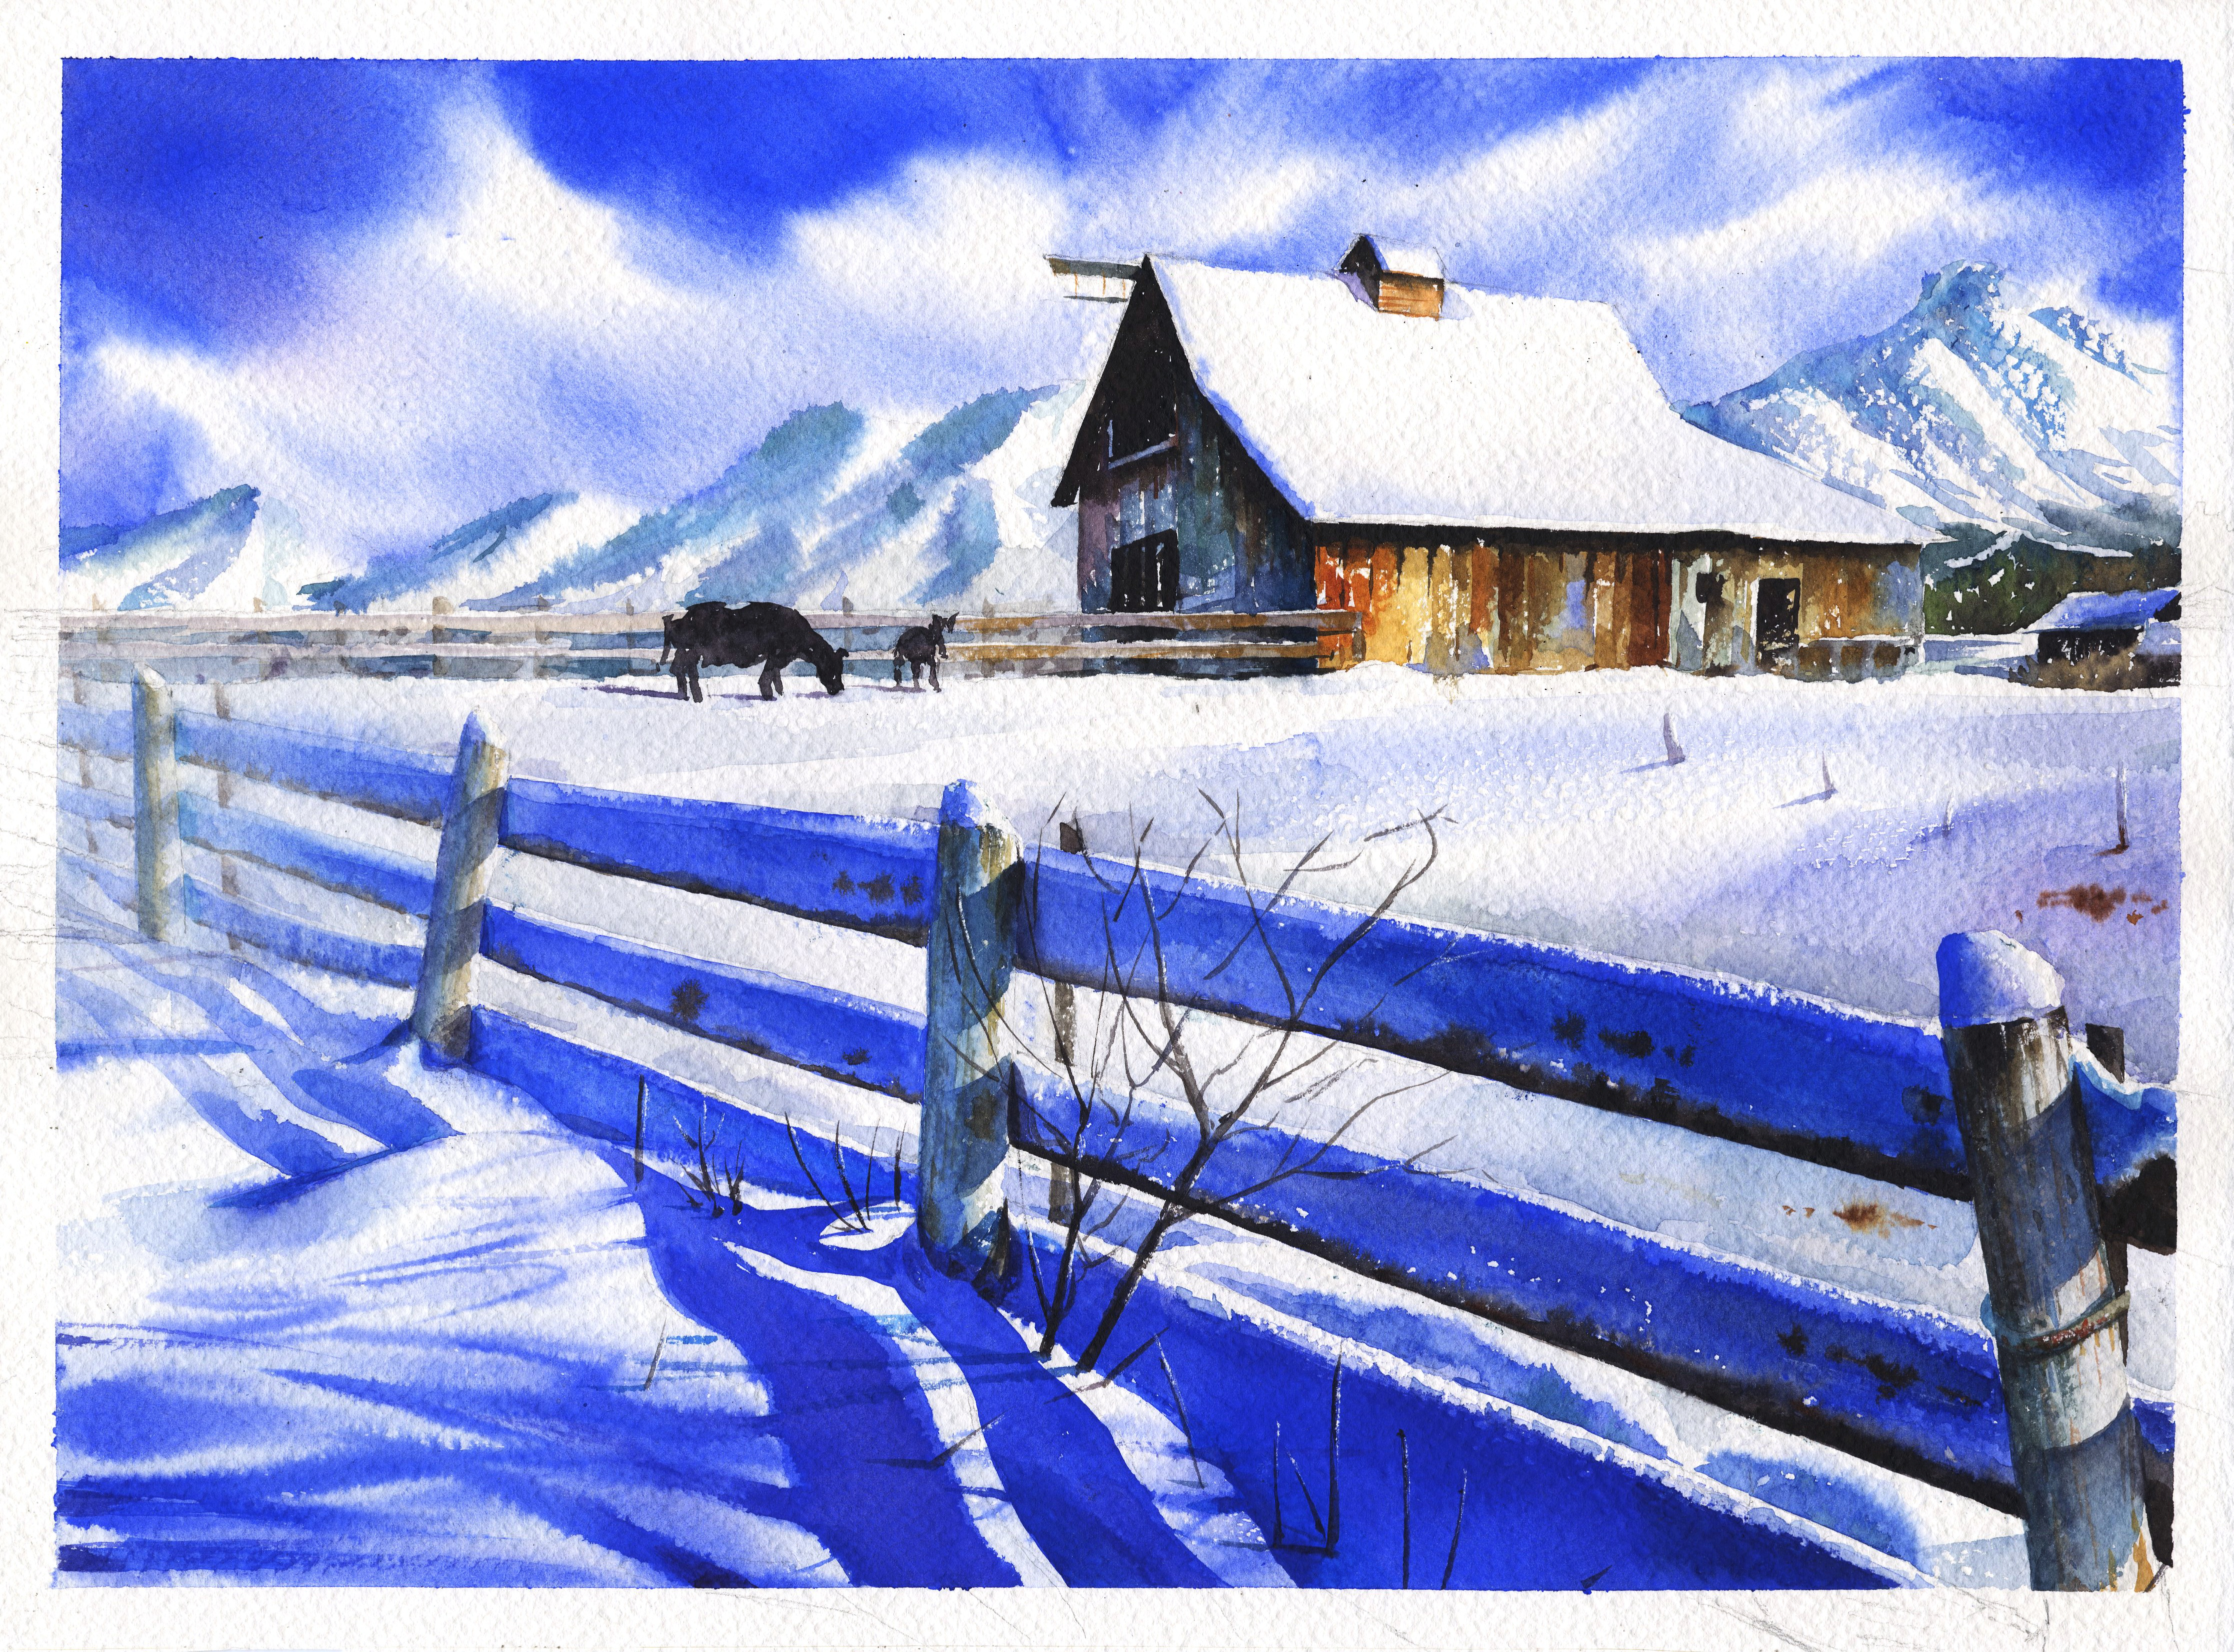 4467x3304 Free Images Snow, Wood, Blue, Painting, Figure, Sketch, Drawing